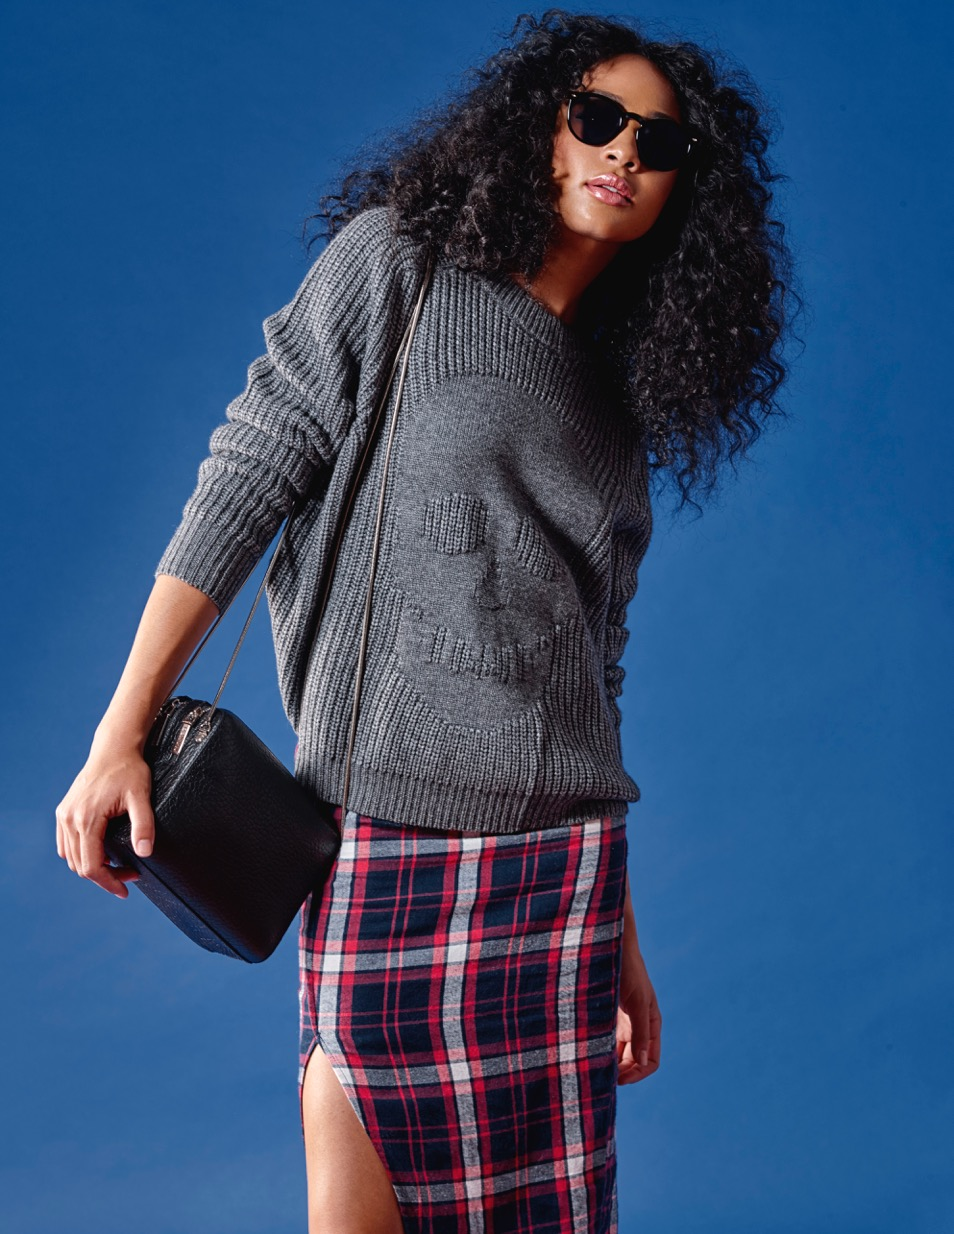 Pair chunky knits with sleek skirts for the perfect Fall look. This edgy combination has street style star written all over it Autumn Cashmere Skull Sweater $395 Nana Judy Plaid Skirt $95 Naked Vice Leather Bag $250